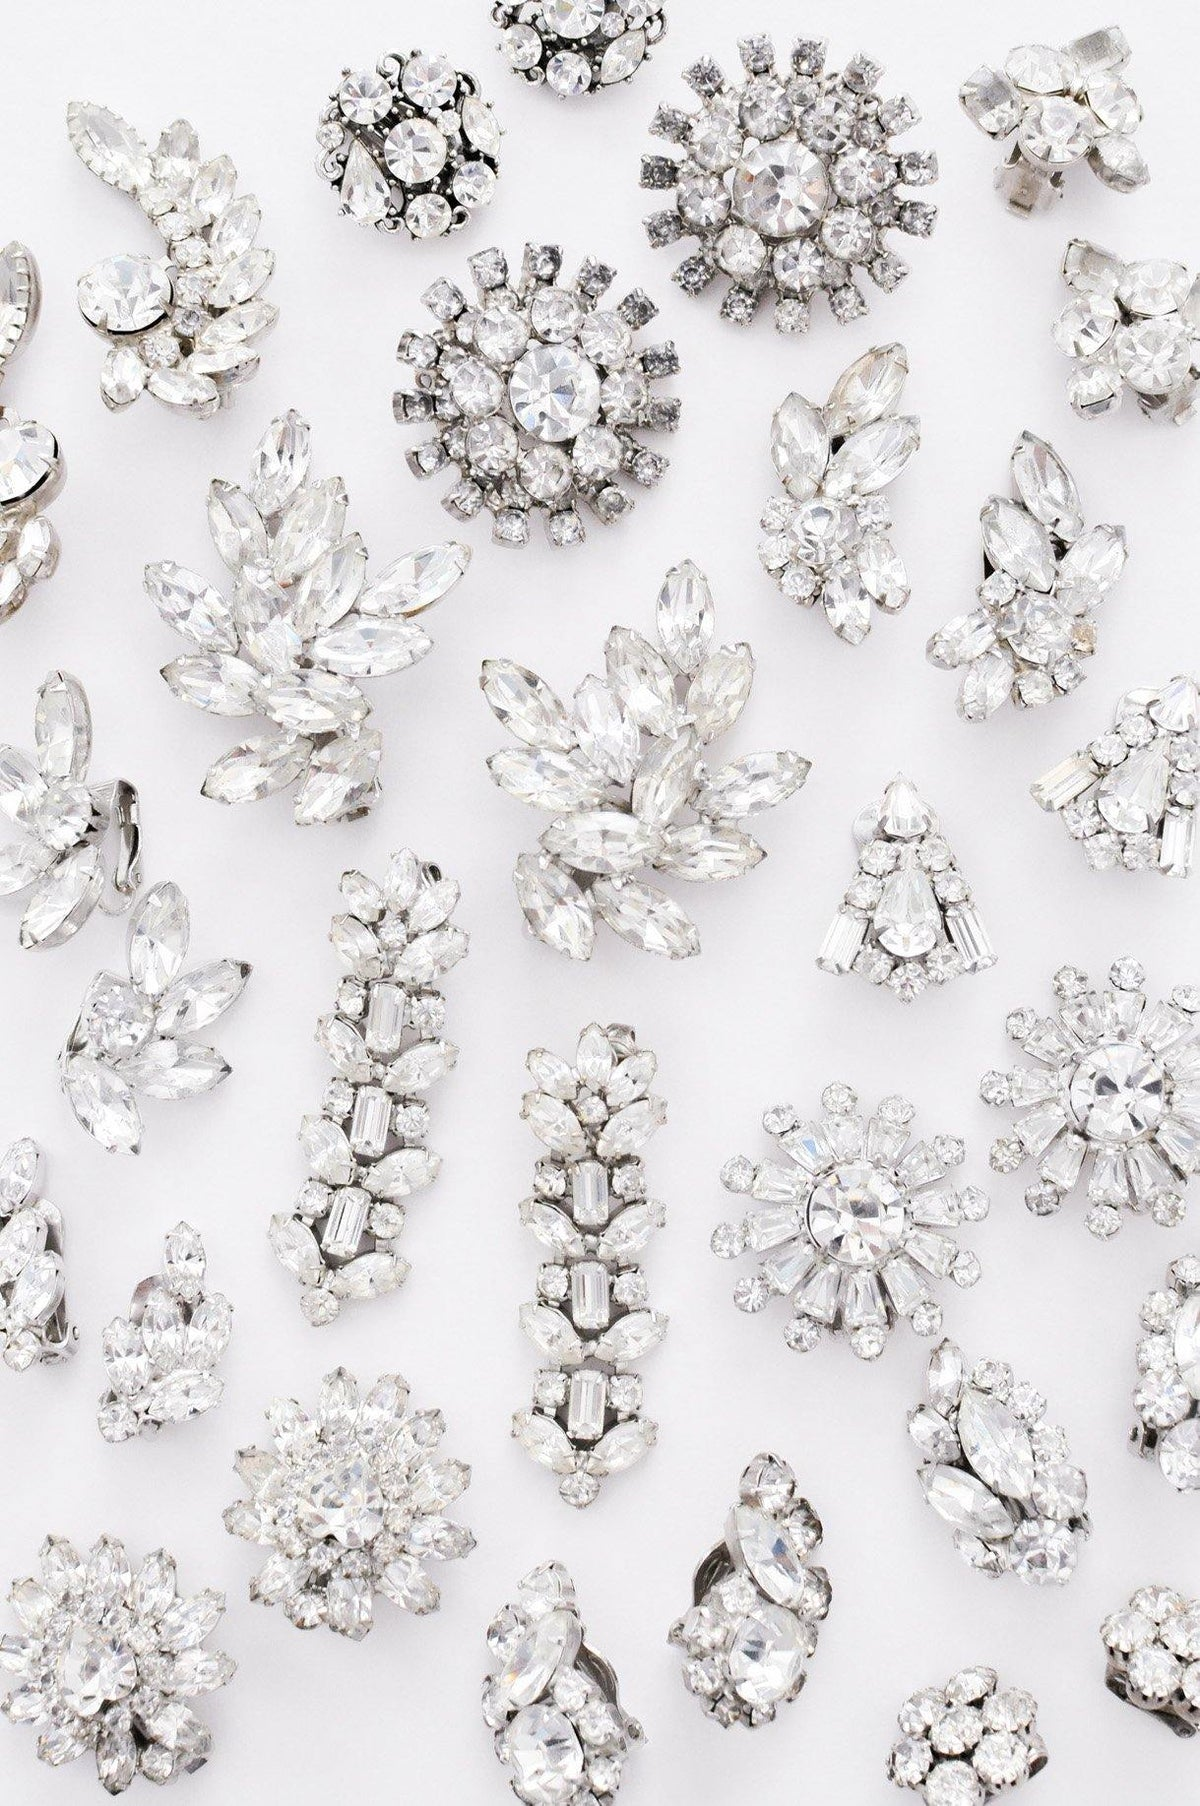 Vintage rhinestone bridal earrings from Sweet & Spark wedding collection.